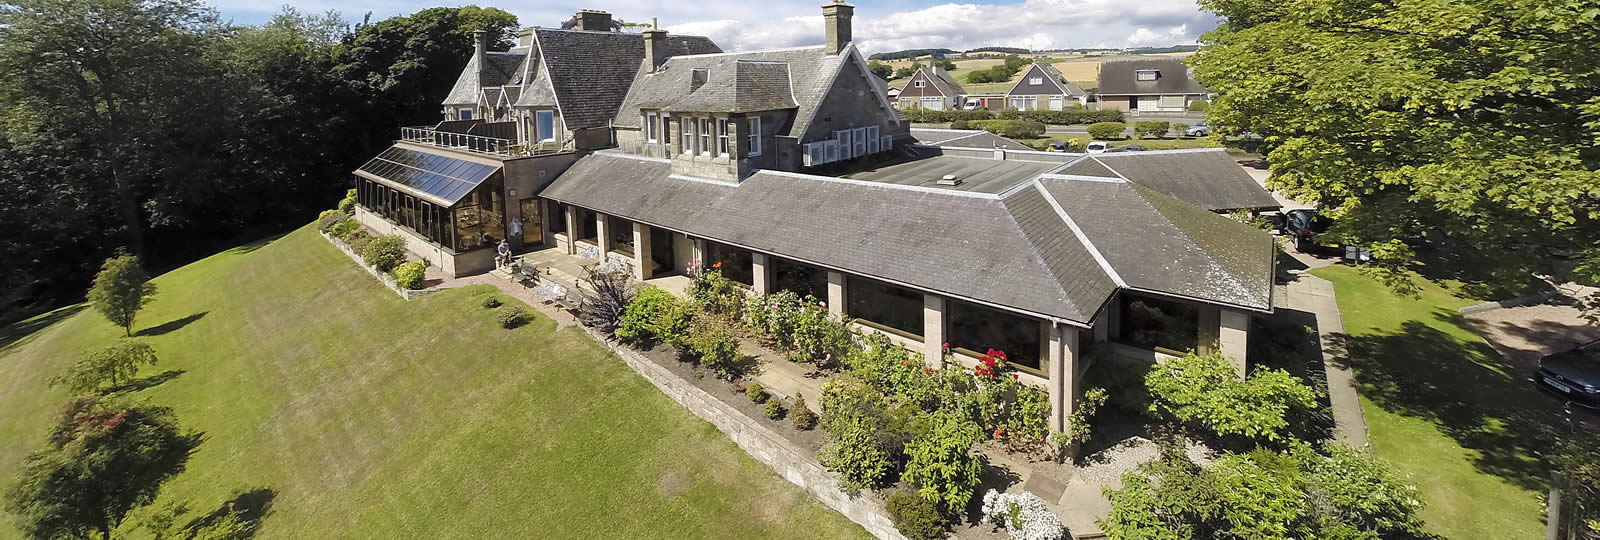 First Class Hotel in Fife - The Old Manor Hotel